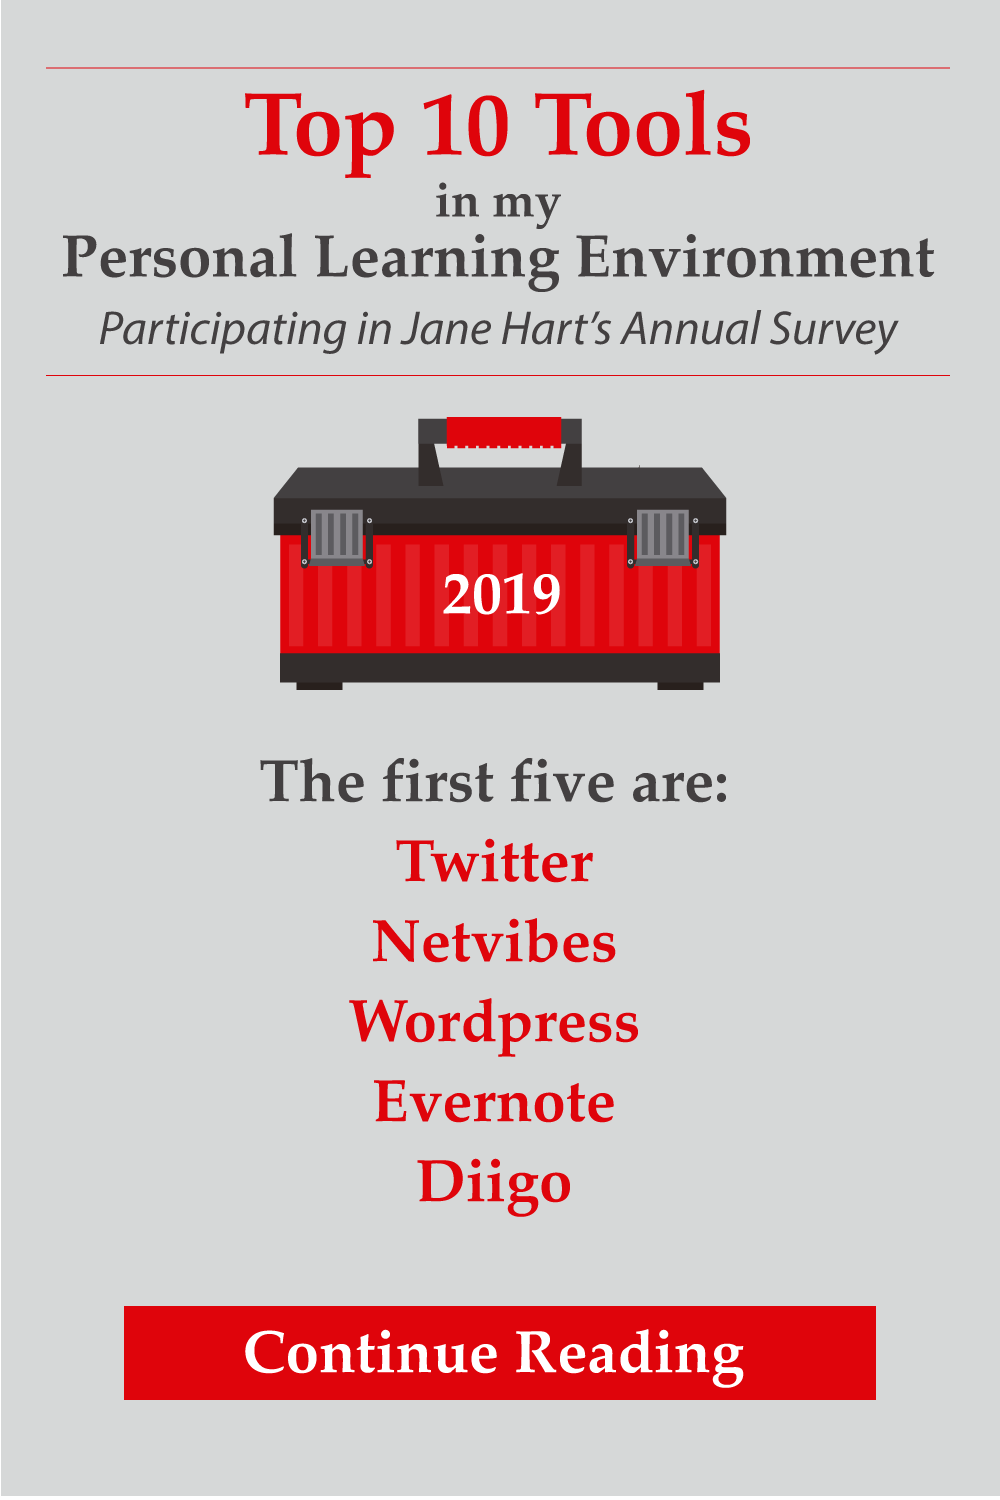 Top 10 Tools in My Personal Learning Environment 2019